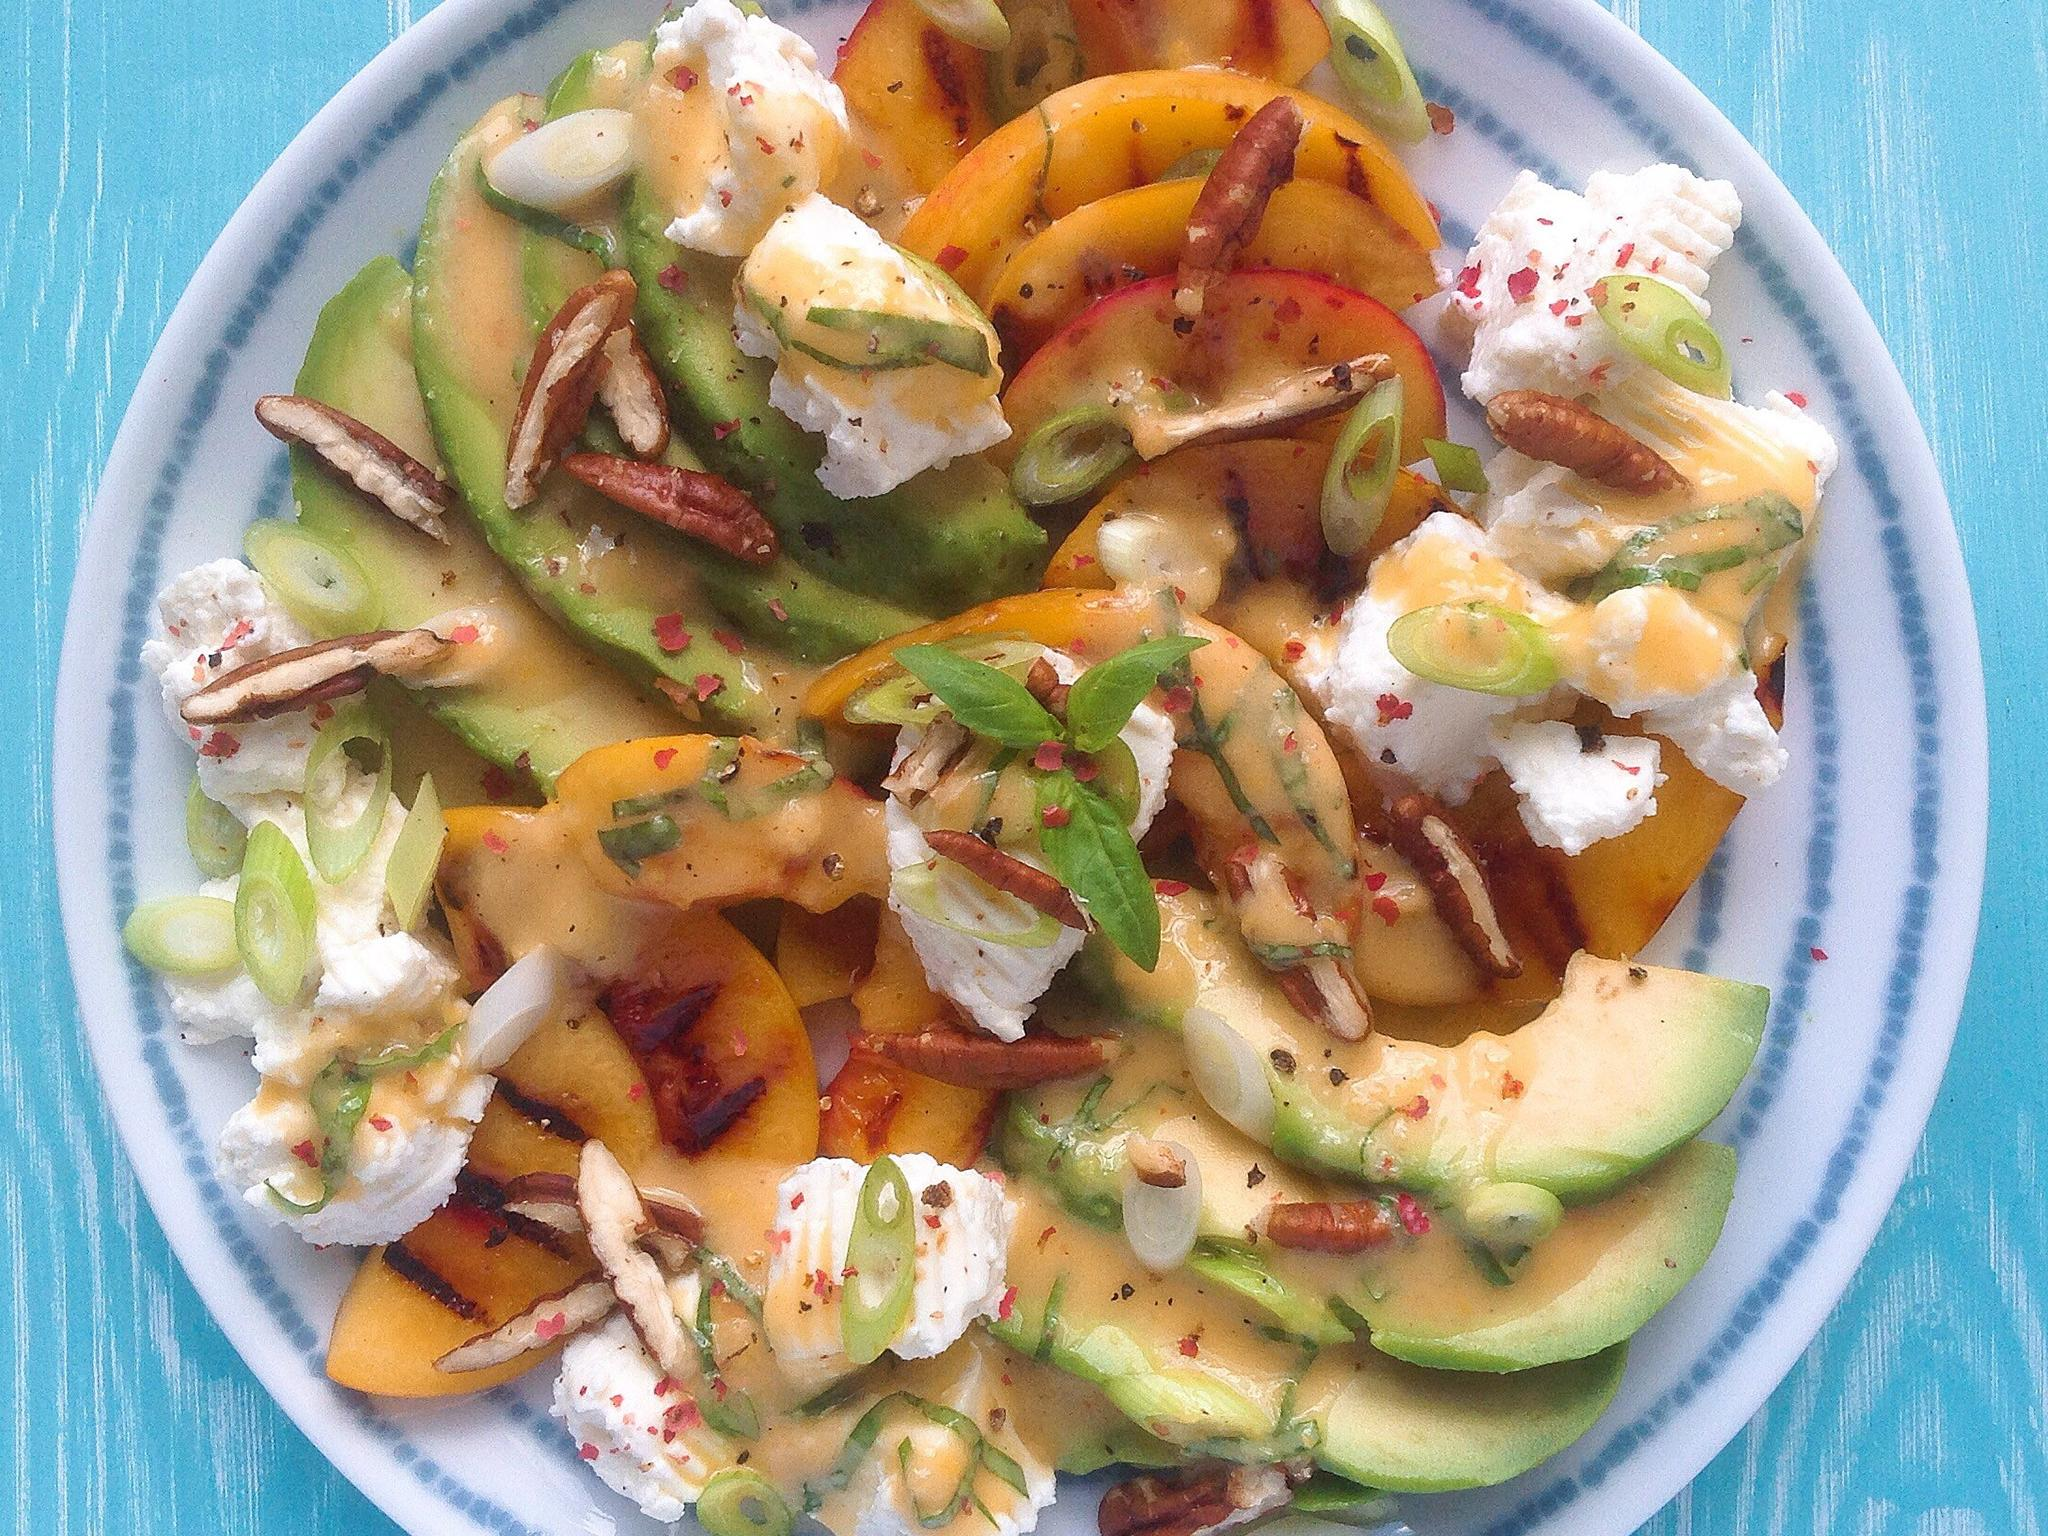 How to make griddled peach, avocado and ricotta salad 1